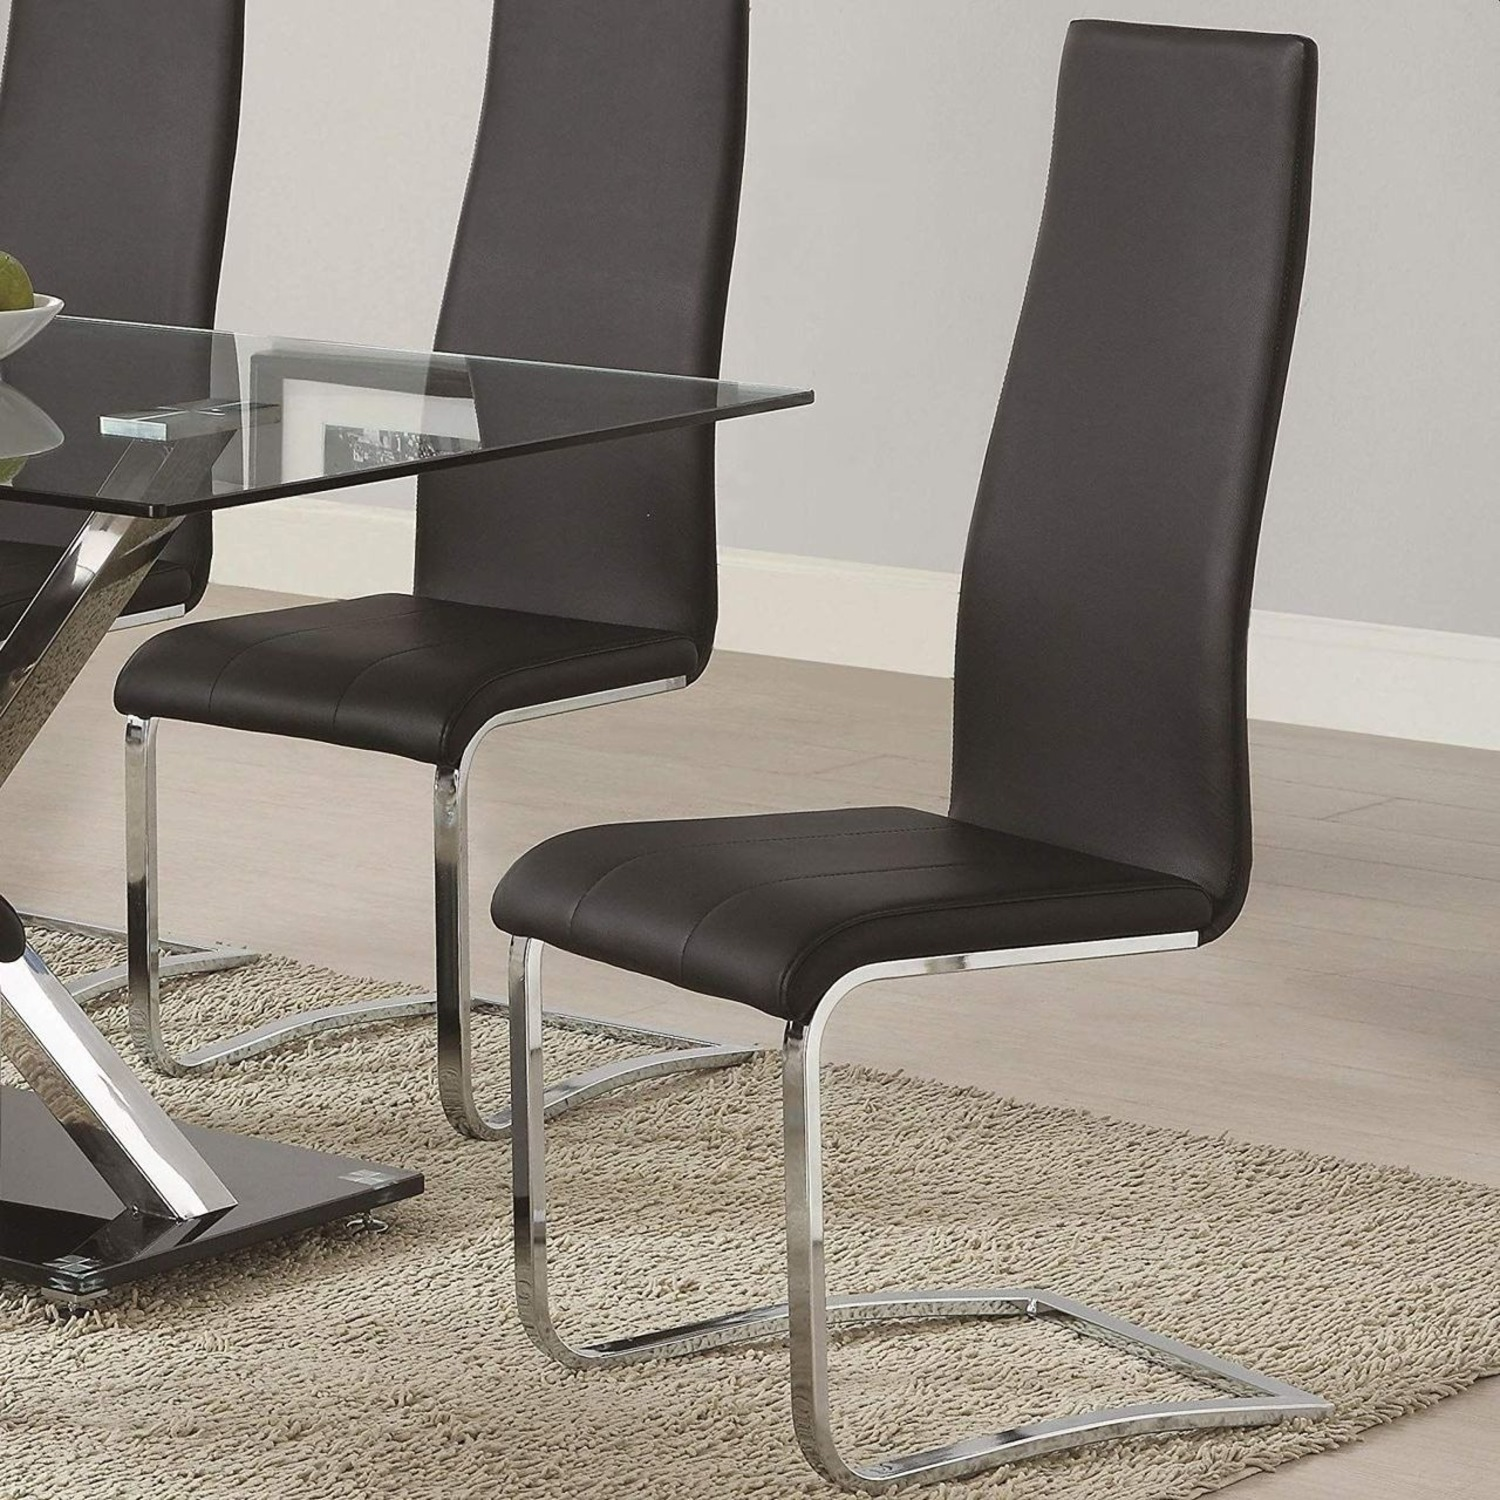 Iconic Breuer Style Side Chair In Black Leather - image-2